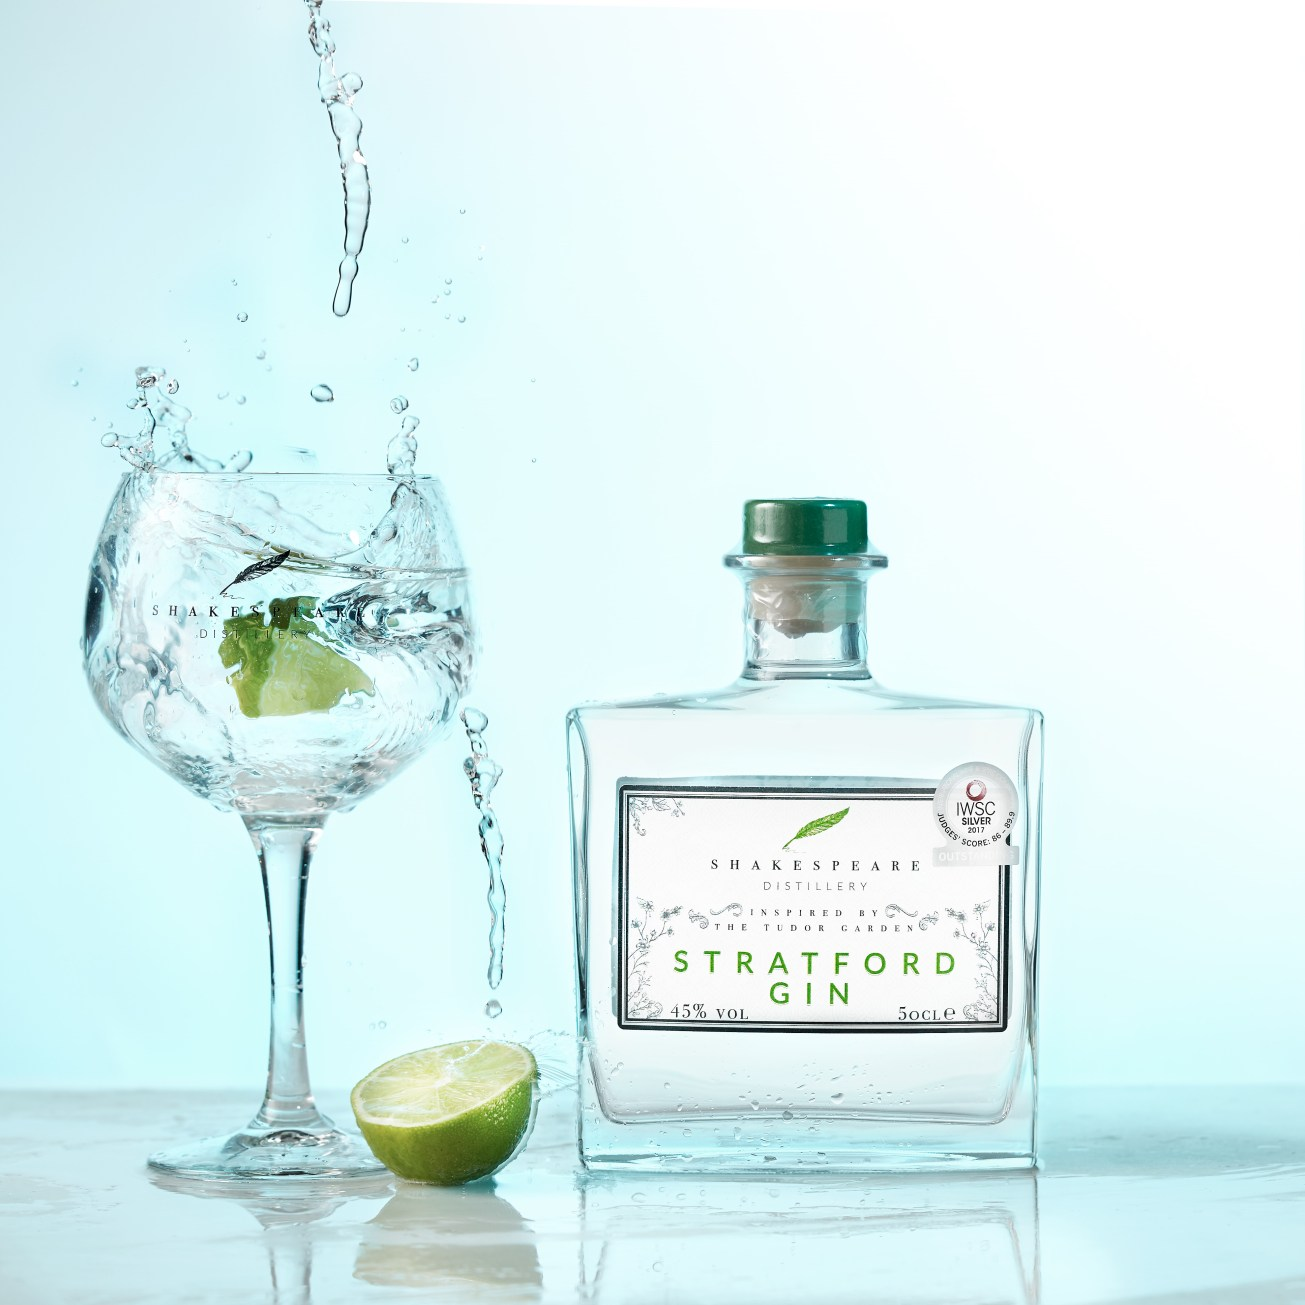 Drikkevarerbilder / drinks / beverage photography / gin / water splash